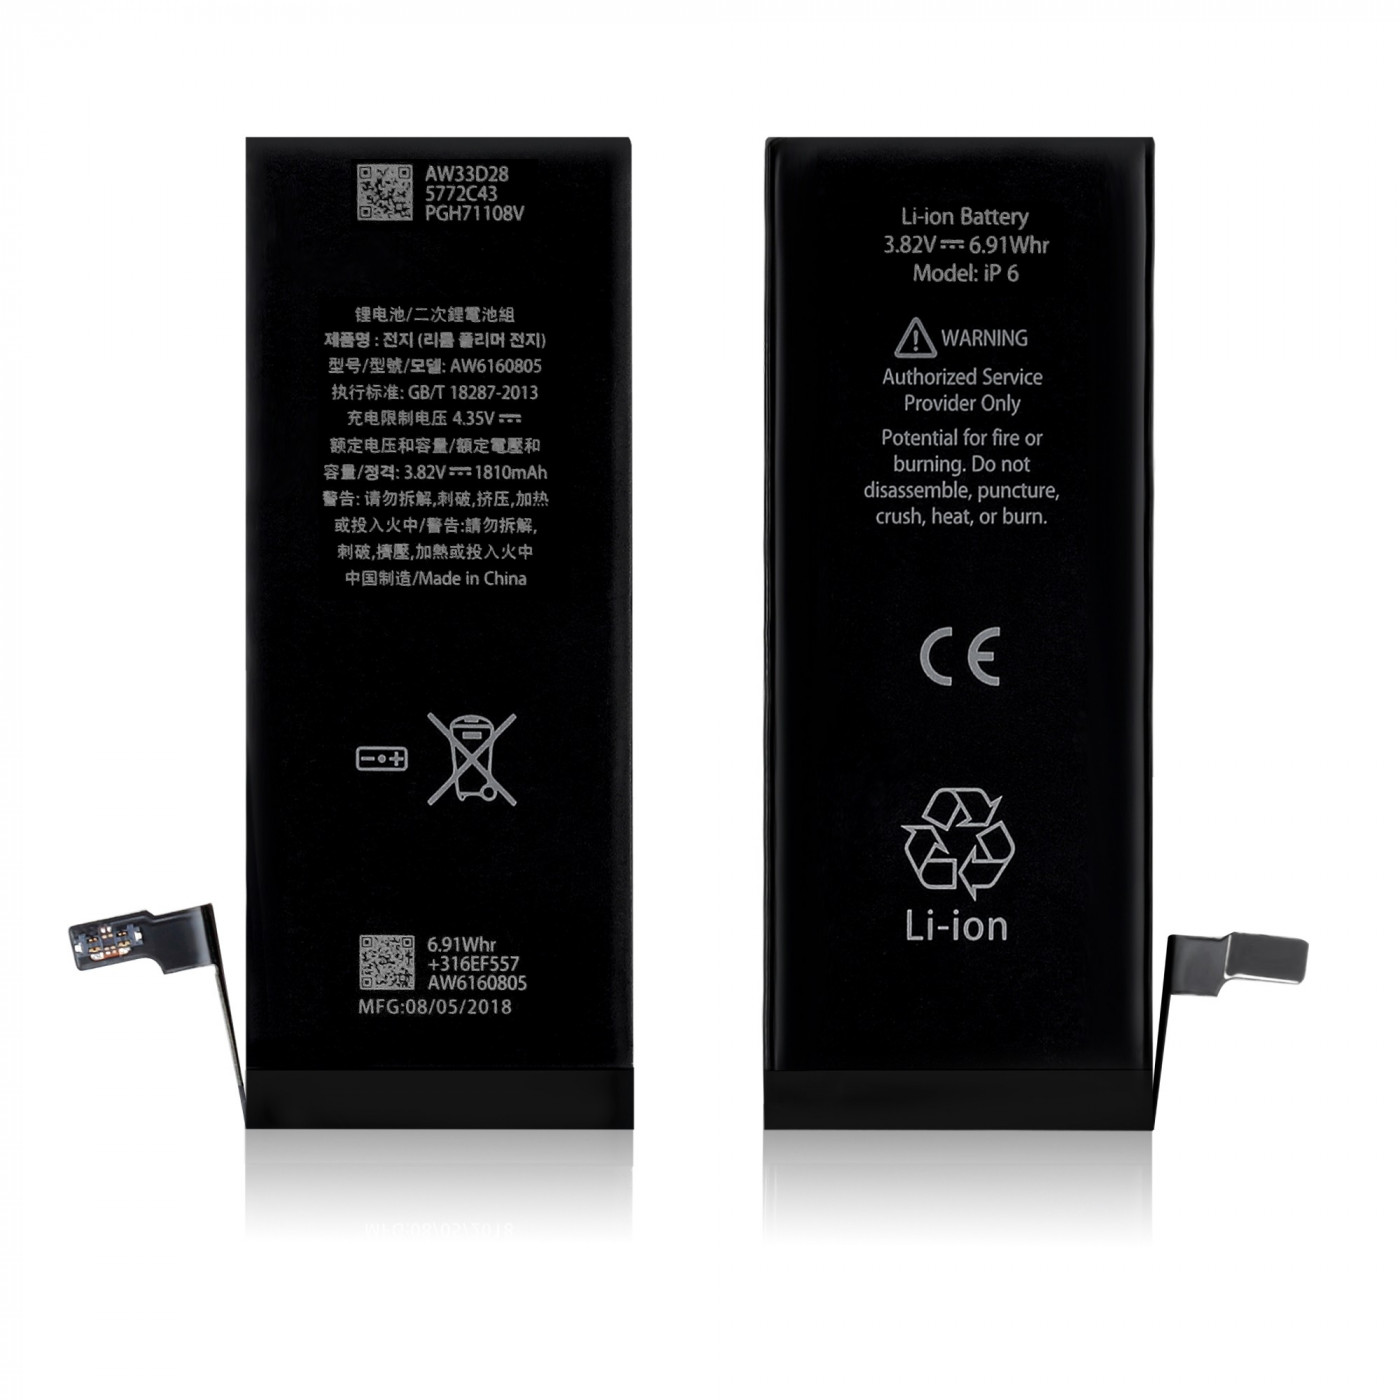 Batteria di ricambio per apple iphone 5s 1510 mah